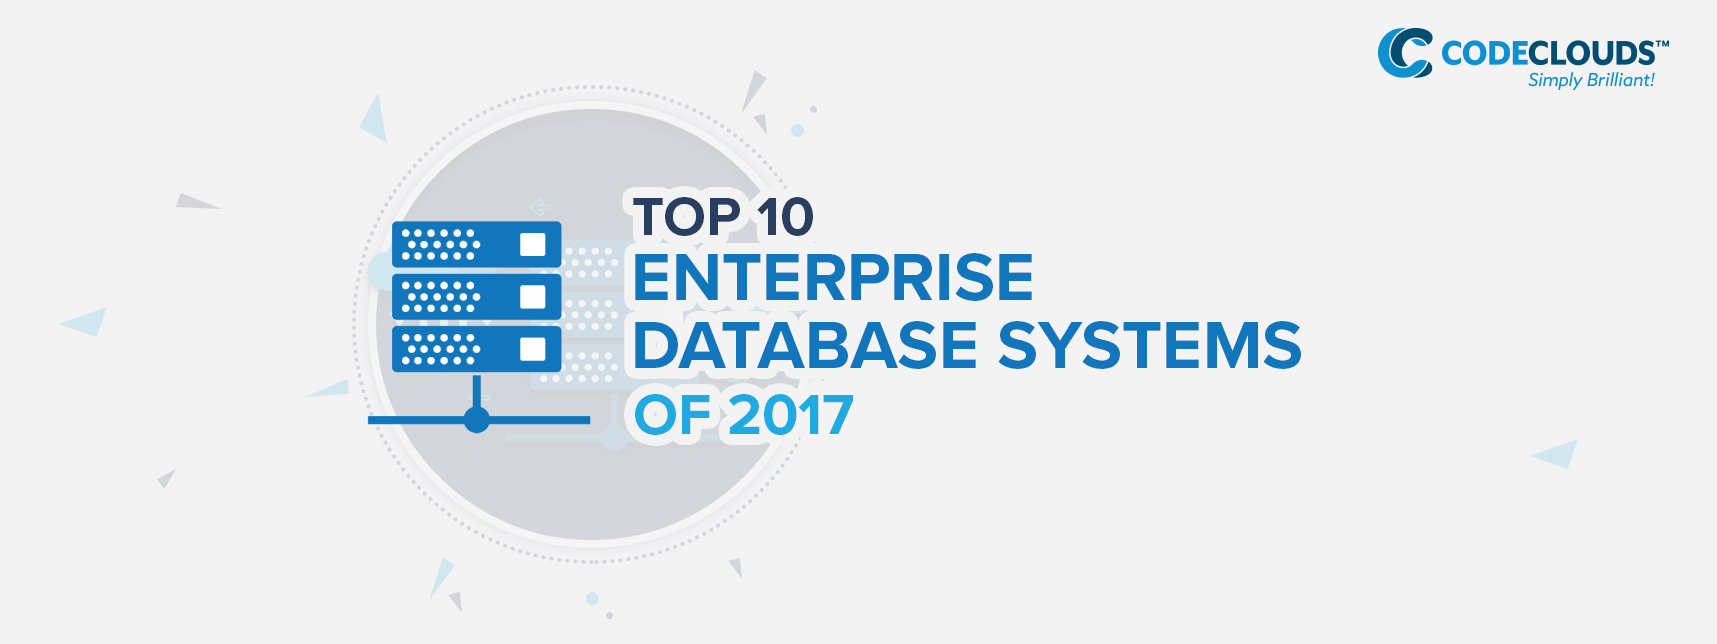 10 Best Enterprise Database Systems of 2017 | CodeClouds